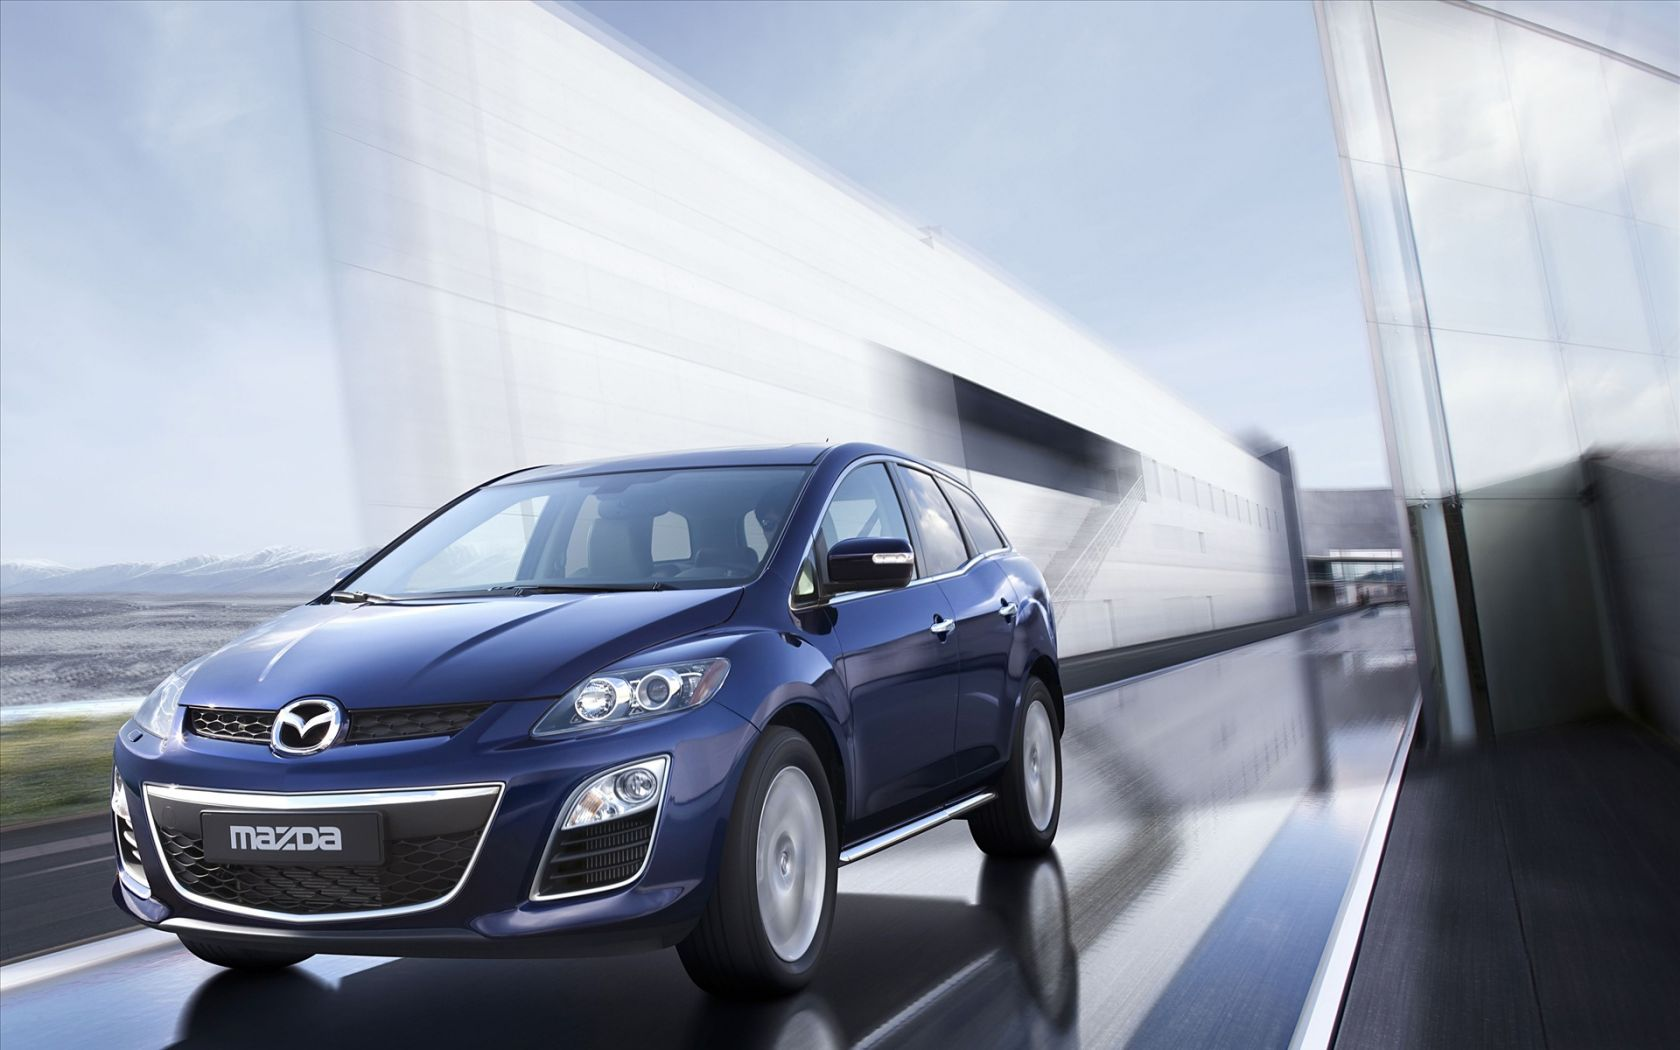 Mazda Cx7 Front View Moving Wallpaper 1680x1050